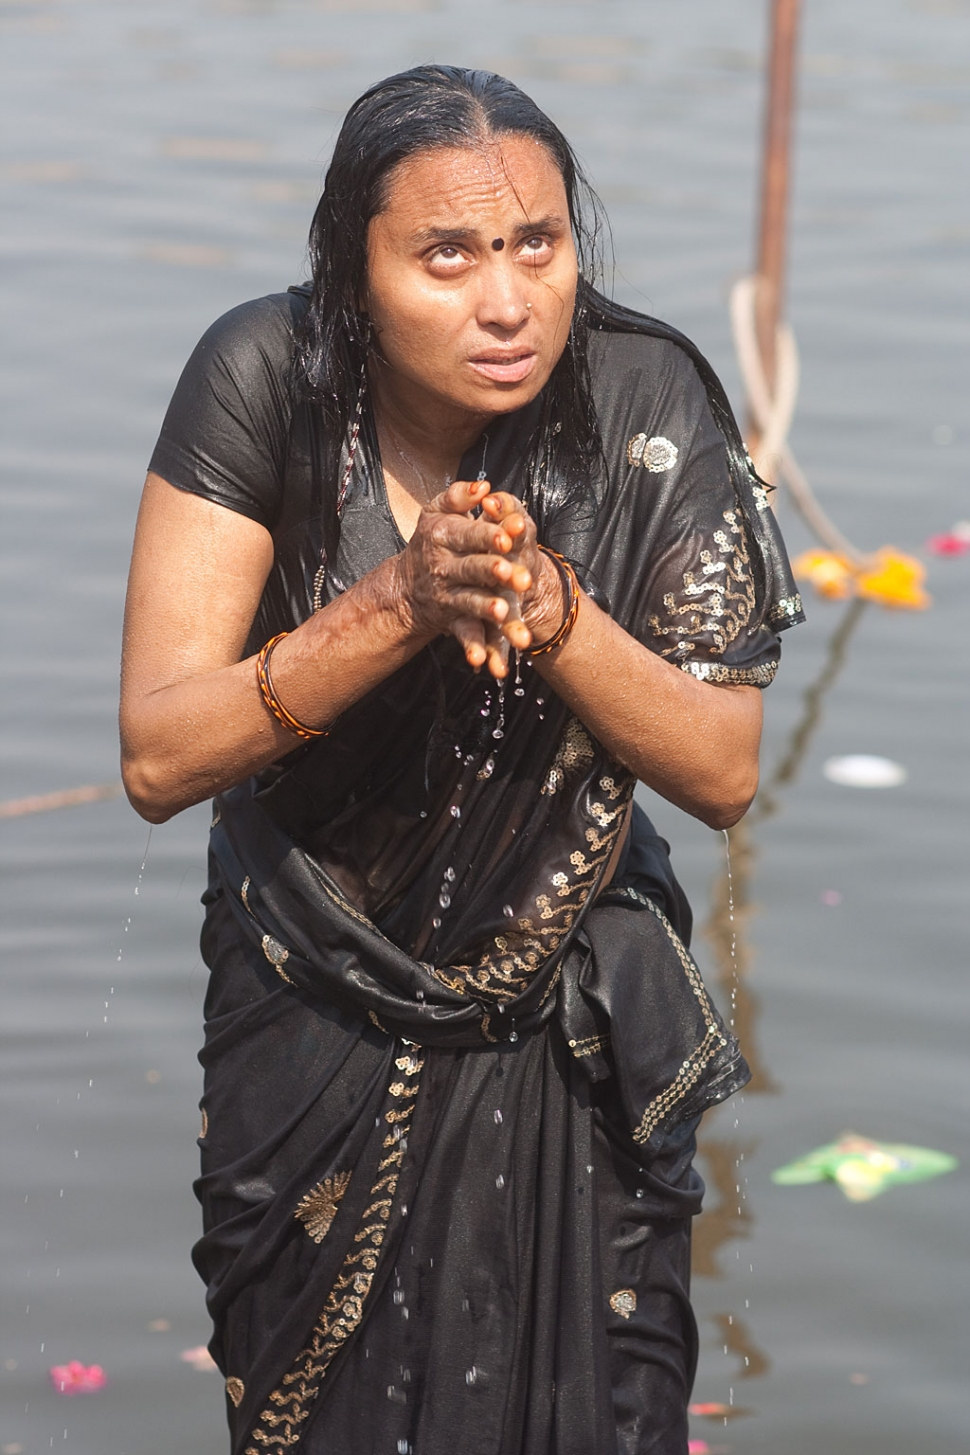 A woman offering up prayers as part of her morning puja on the bathing ghat in Ujjain, Madhya Pradesh. Photograph by Paul Hanson.